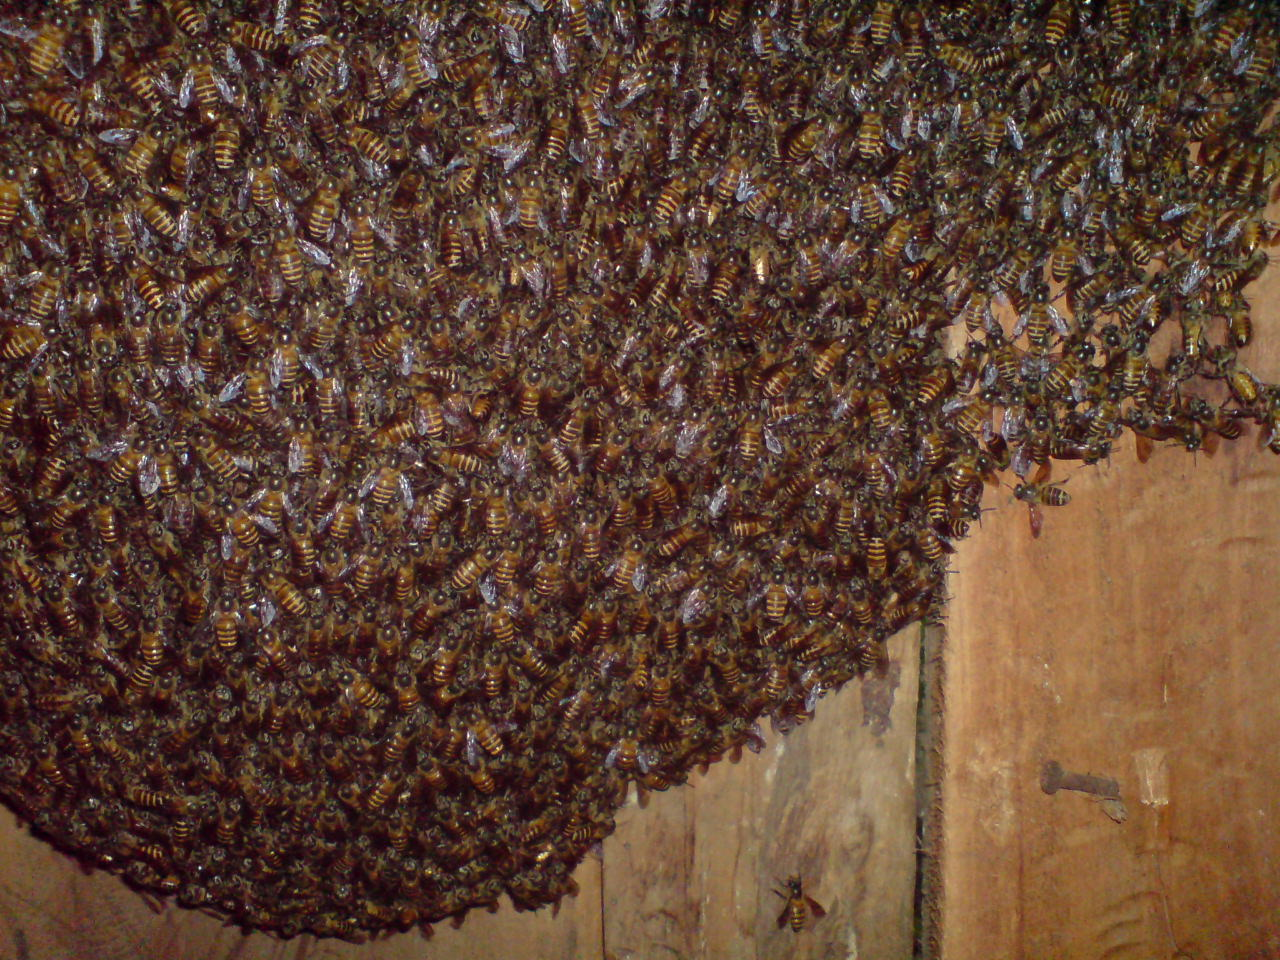 Migrating Honey Bee Kingdom